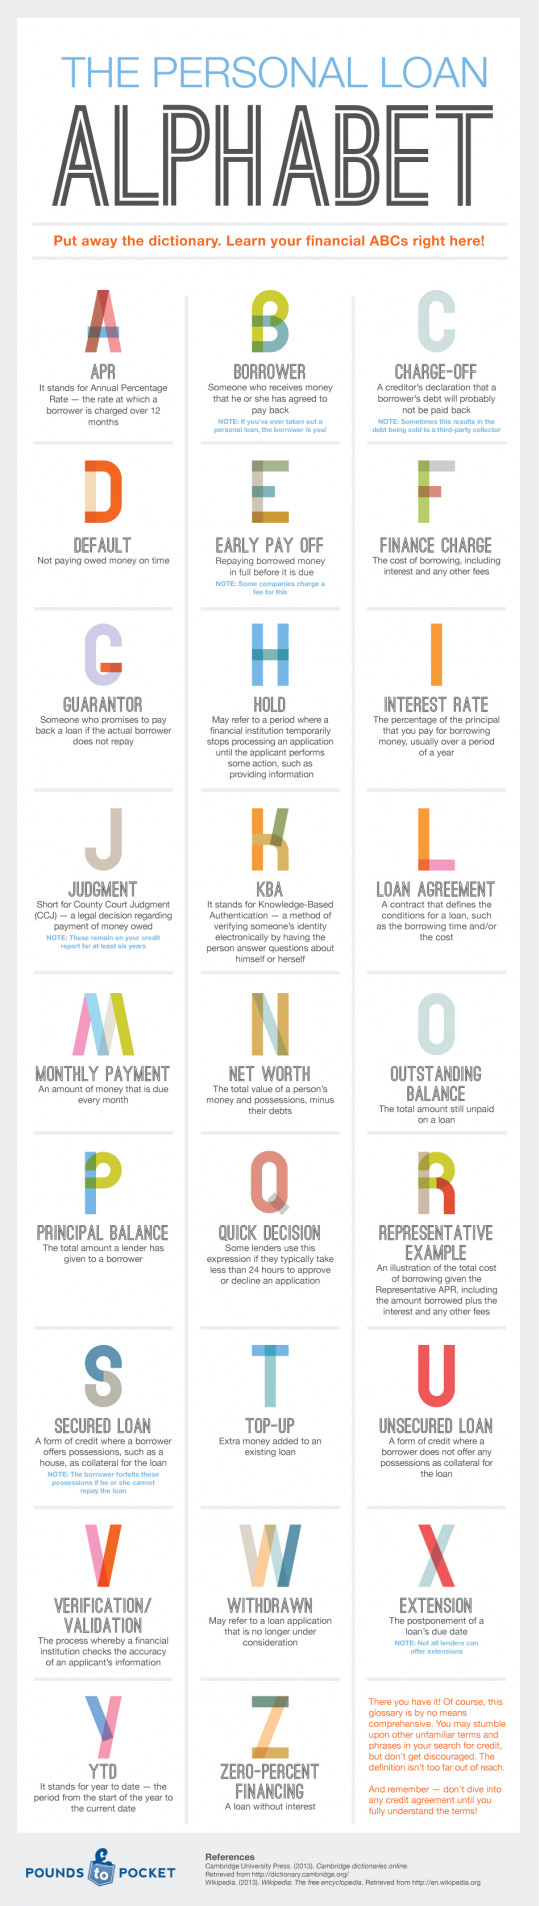 The Personal Loan Alphabet